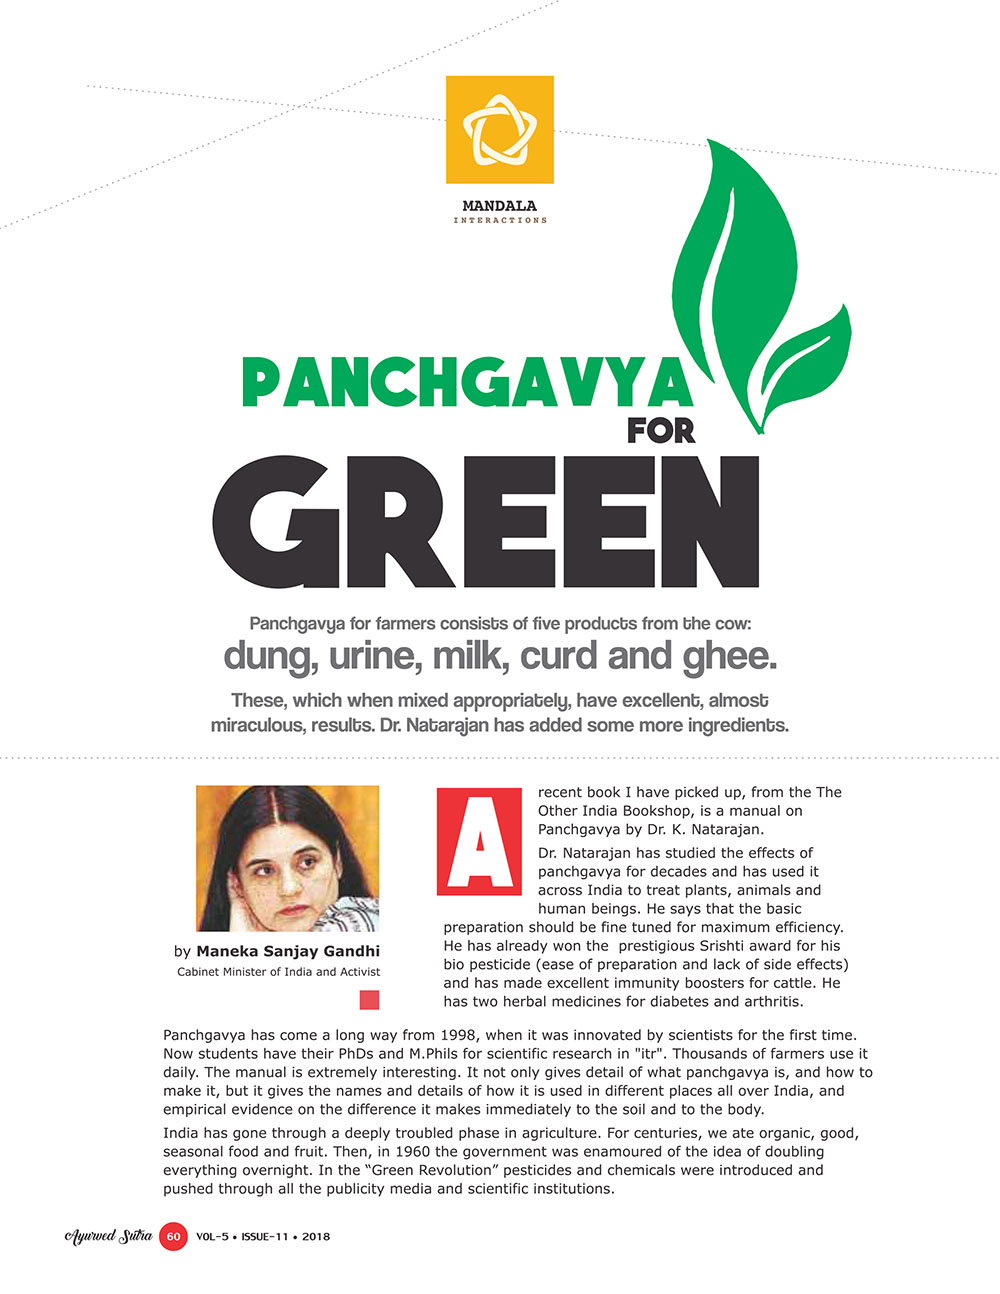 Ayurvedsutra Vol 05 issue 11 62 - Panchgavya for Green